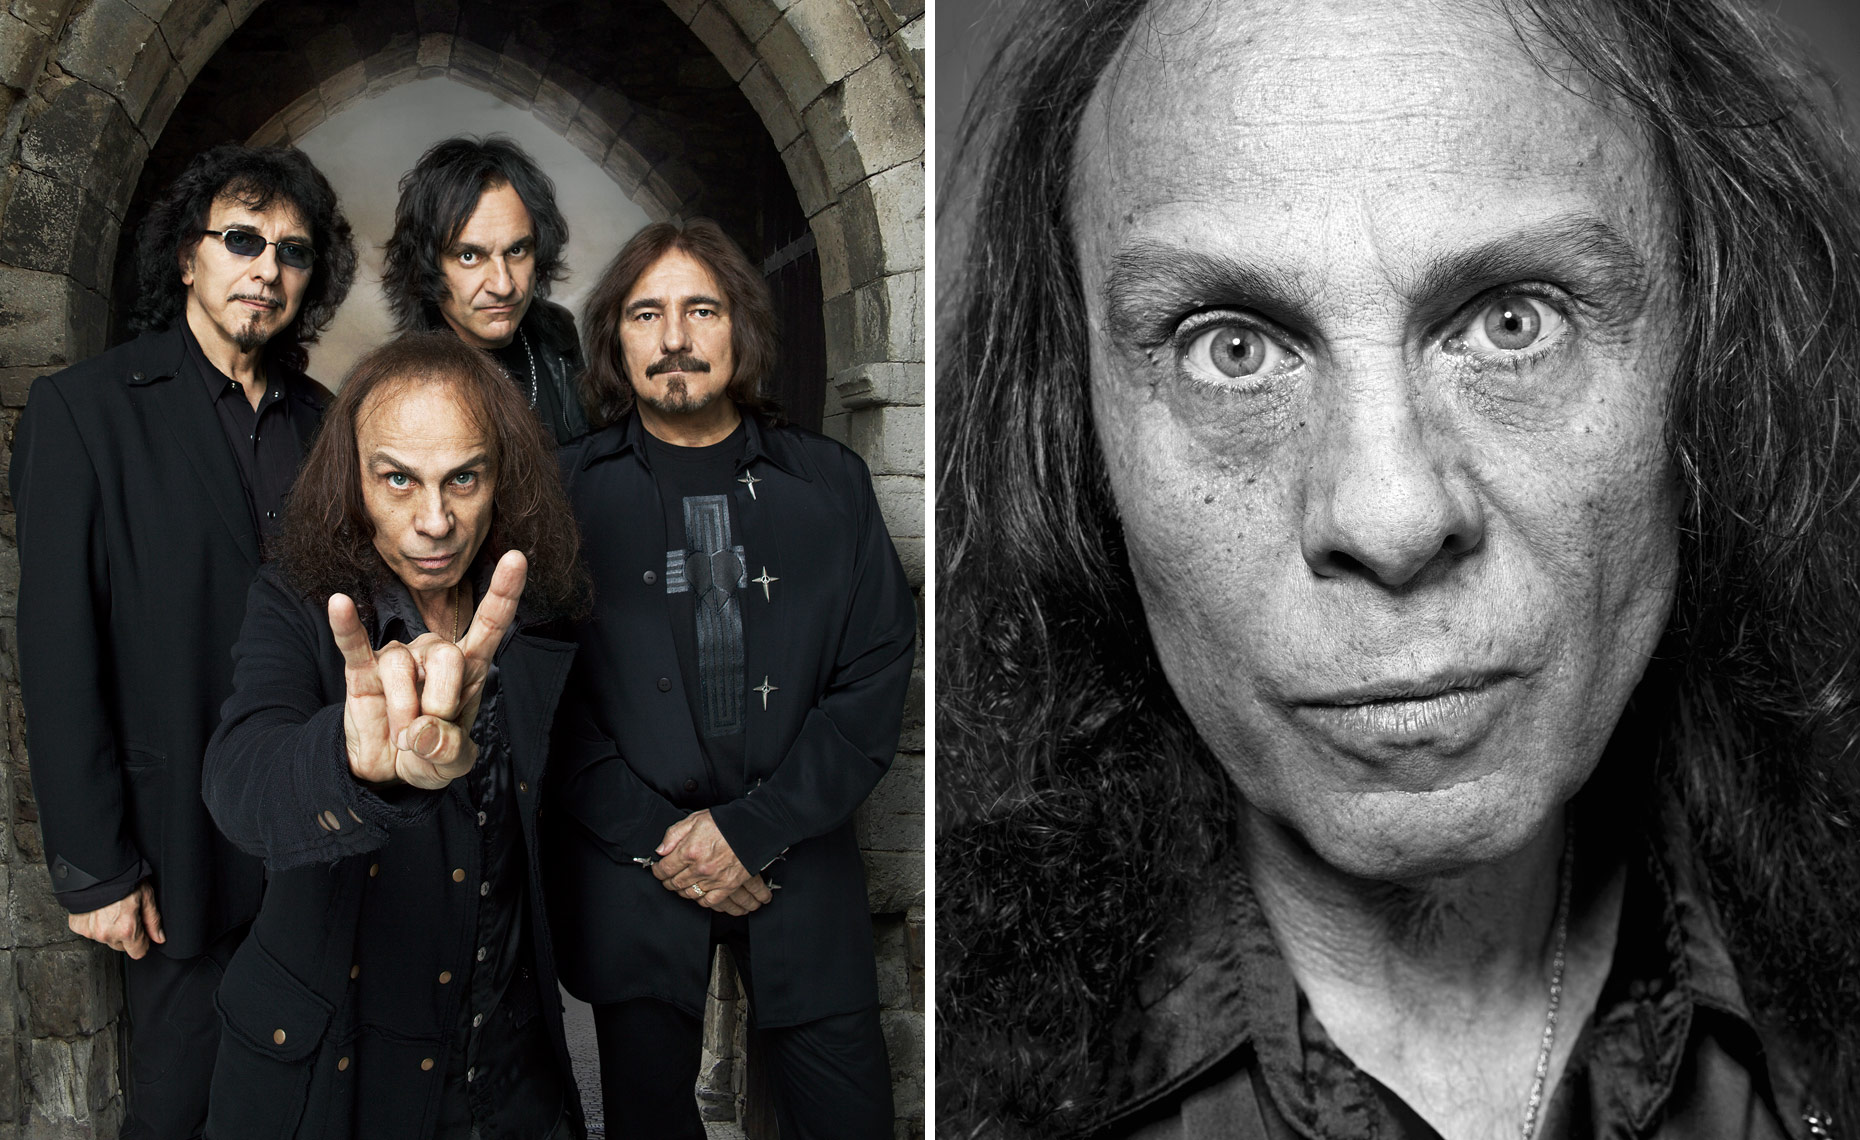 Black Sabbath / Ronnie James Dio © Dale May